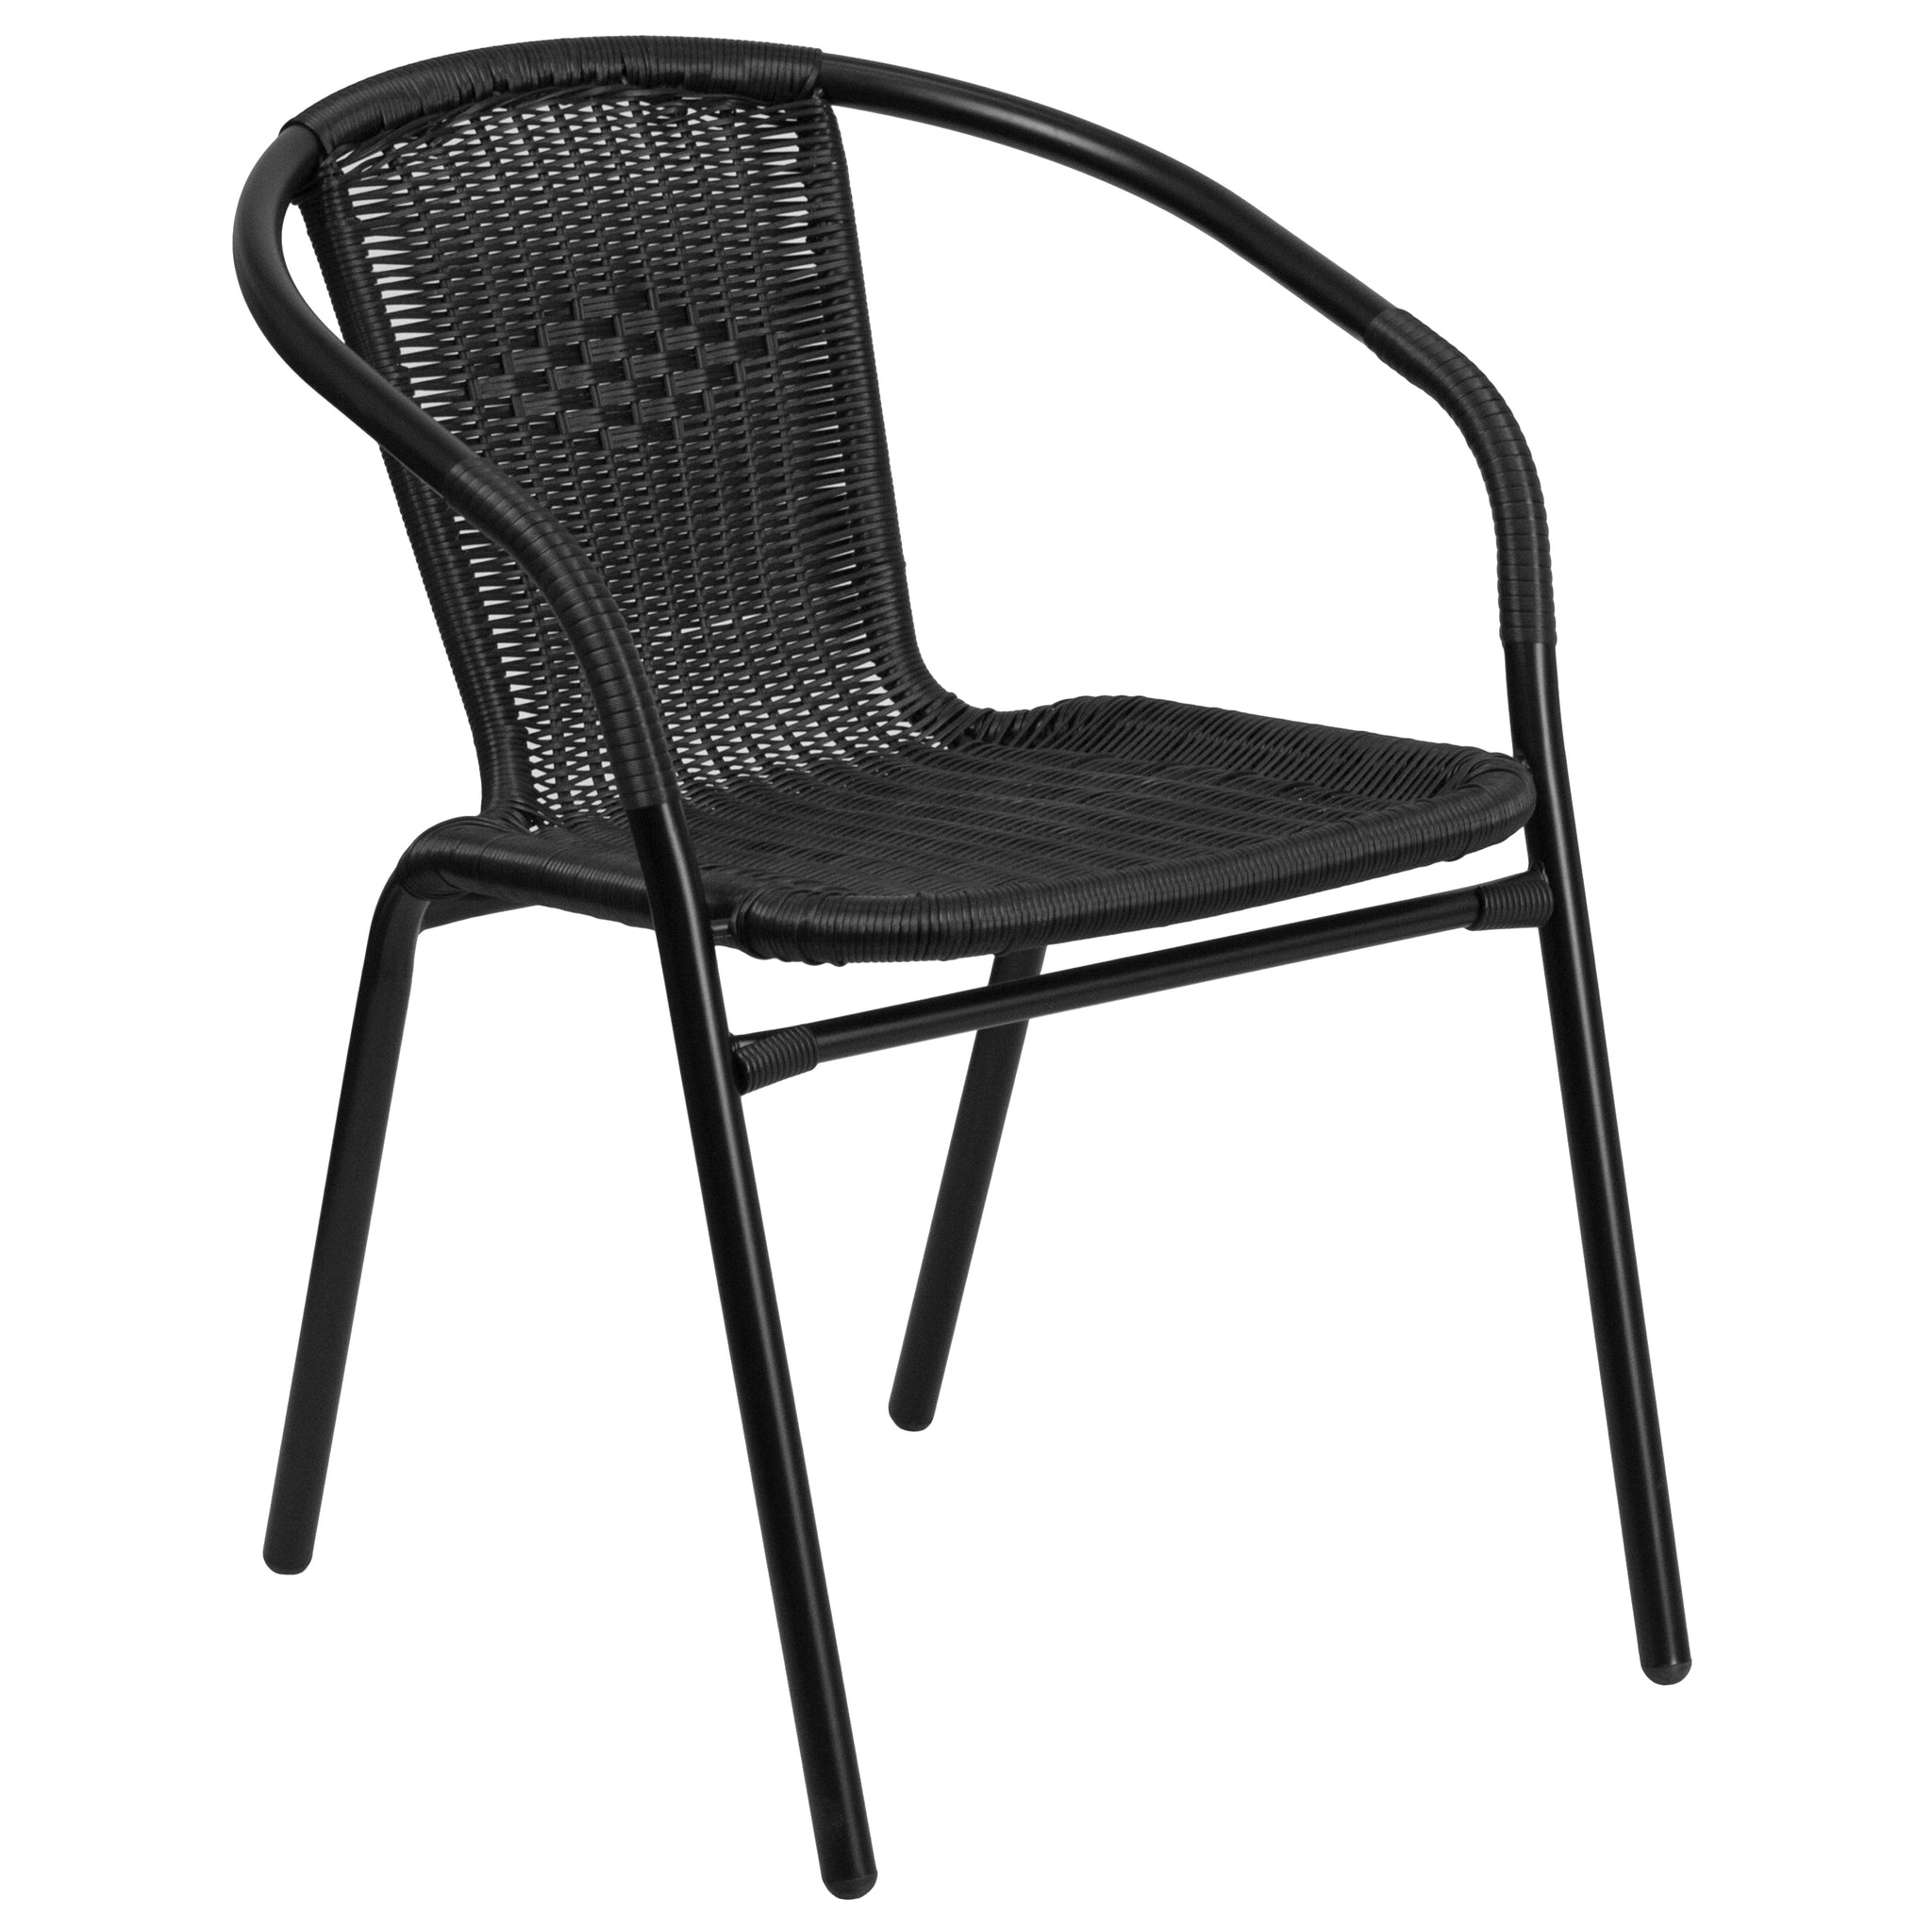 Rattan Indoor-Outdoor Restaurant Stack Chair: Black